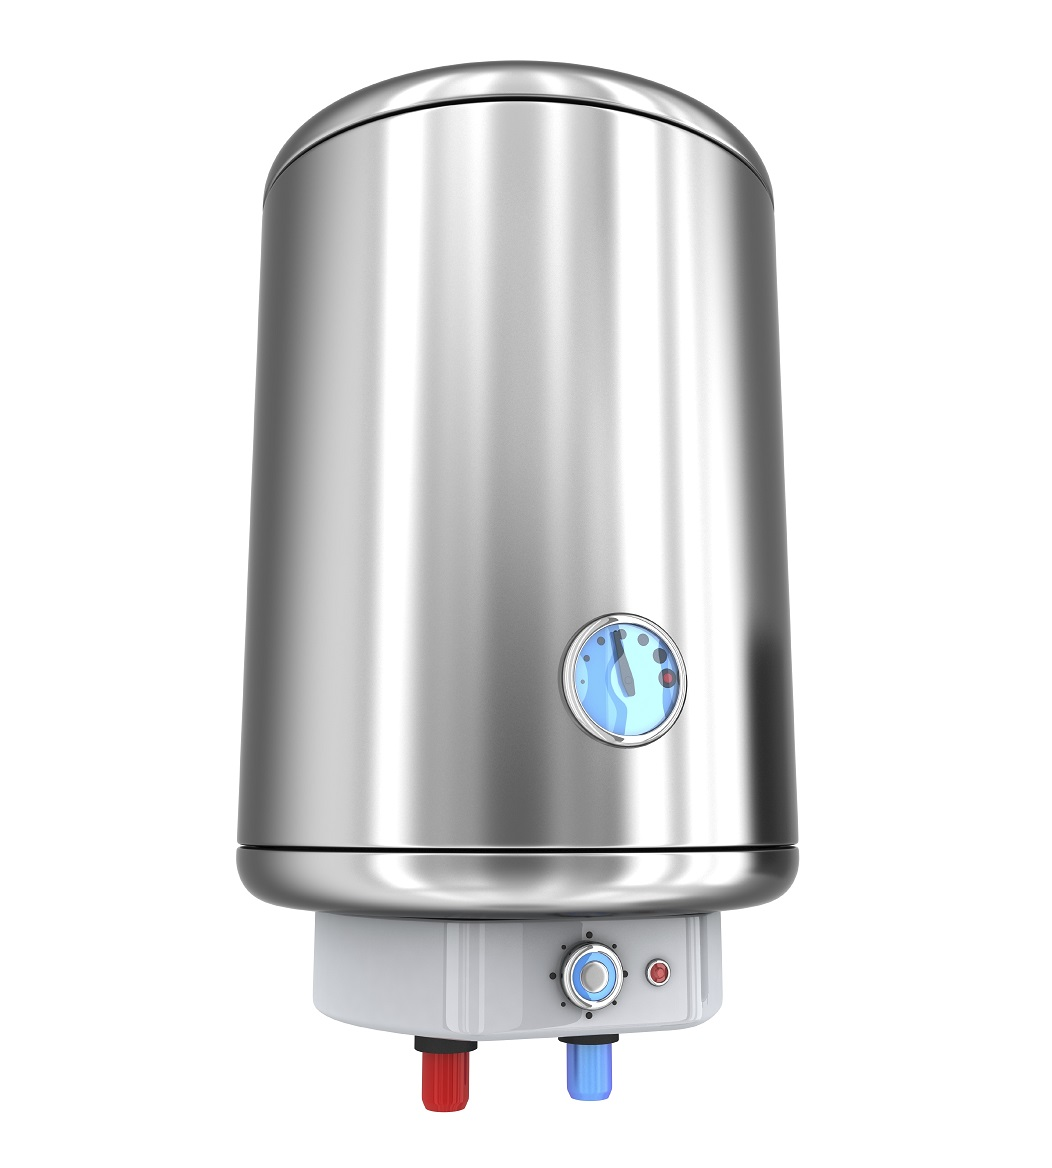 How to pick a water heater - How To Choose The Right Size Water Heater